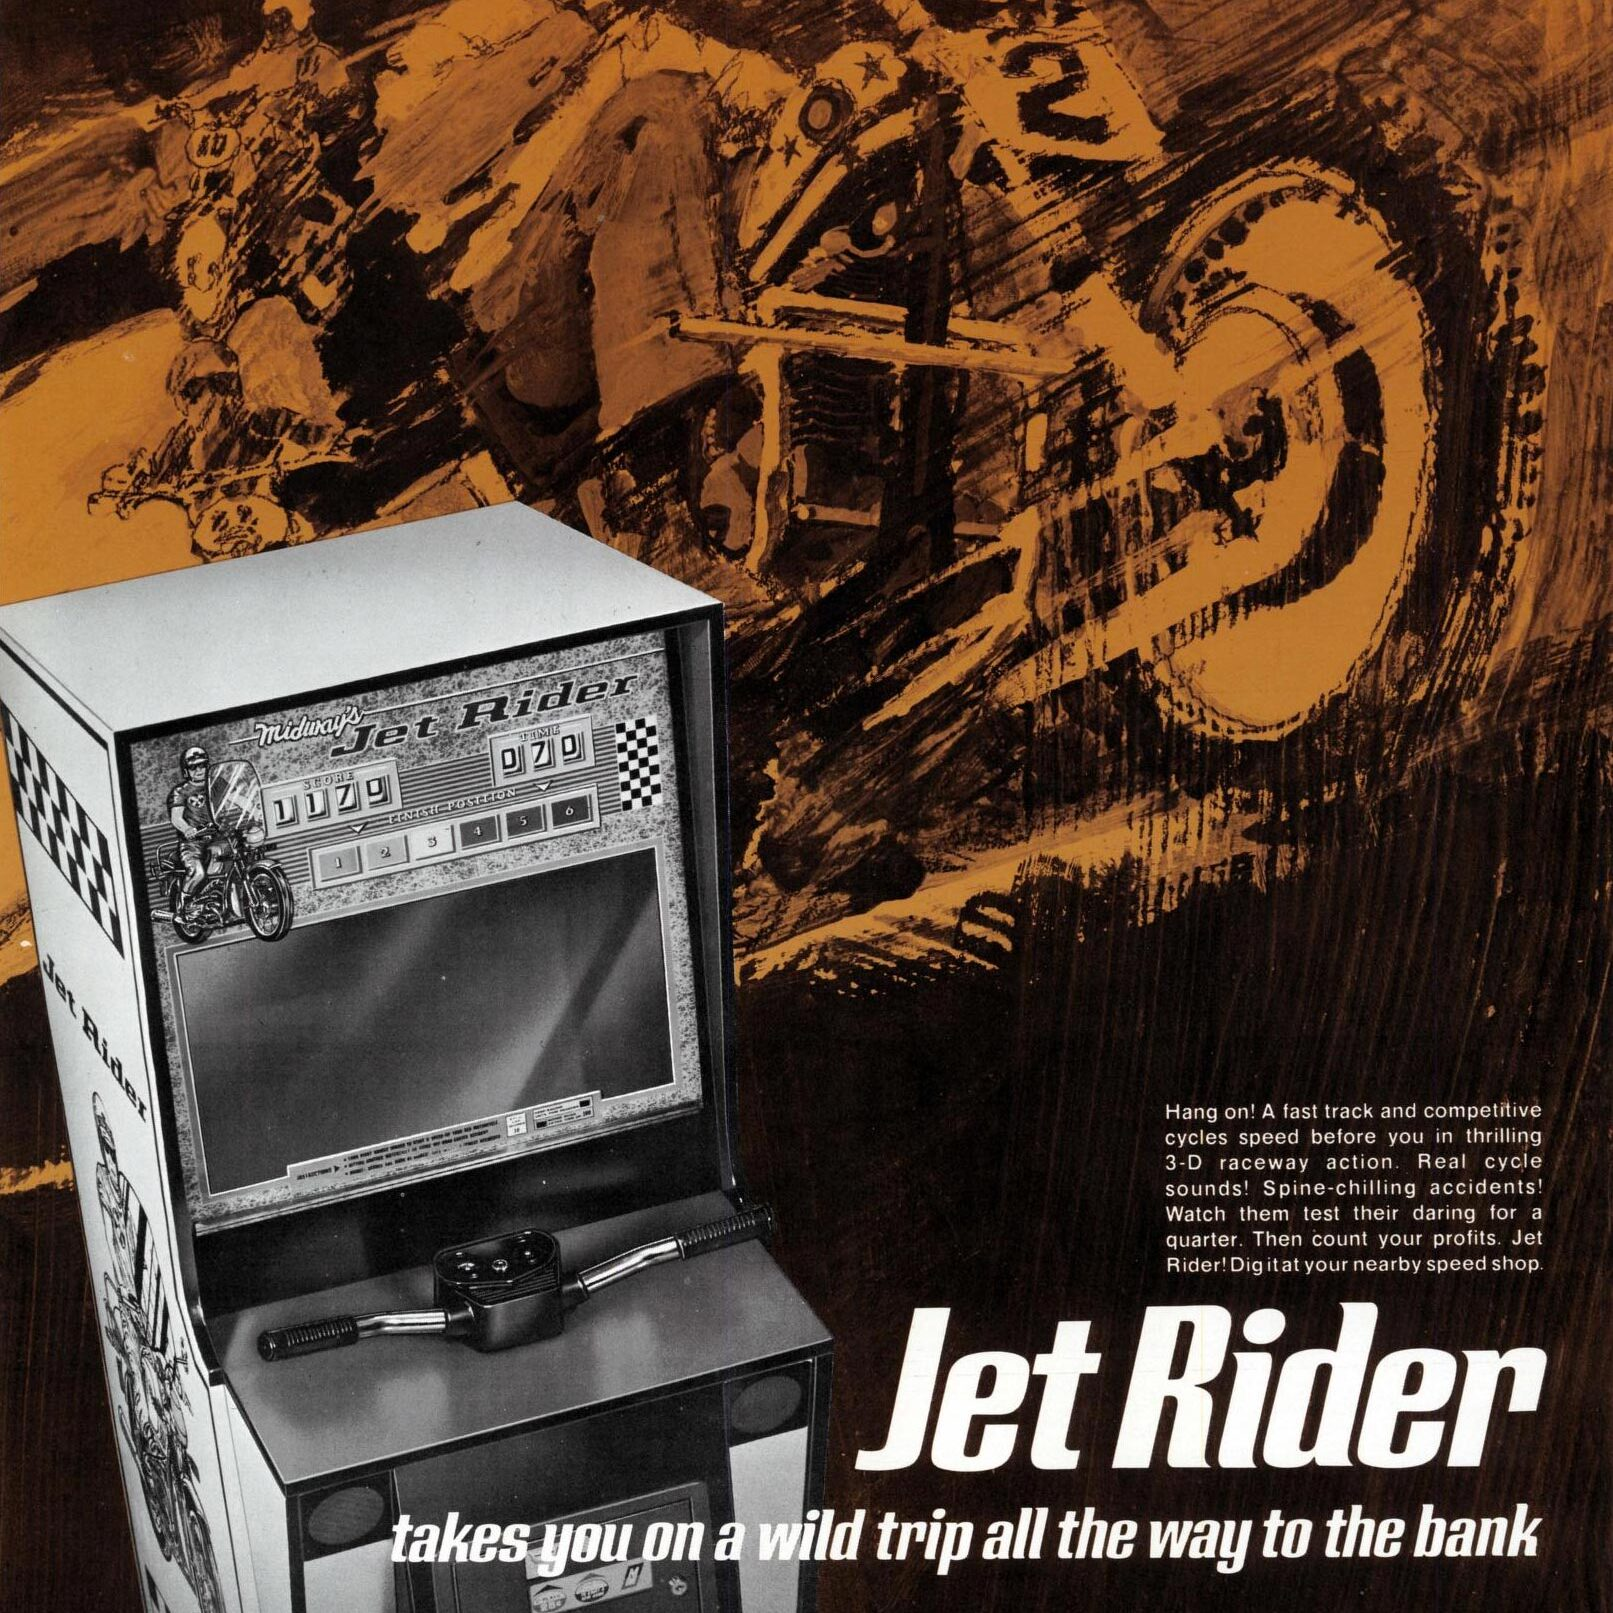 Jet Rider, an eletro-mechanical arcade game by Midway